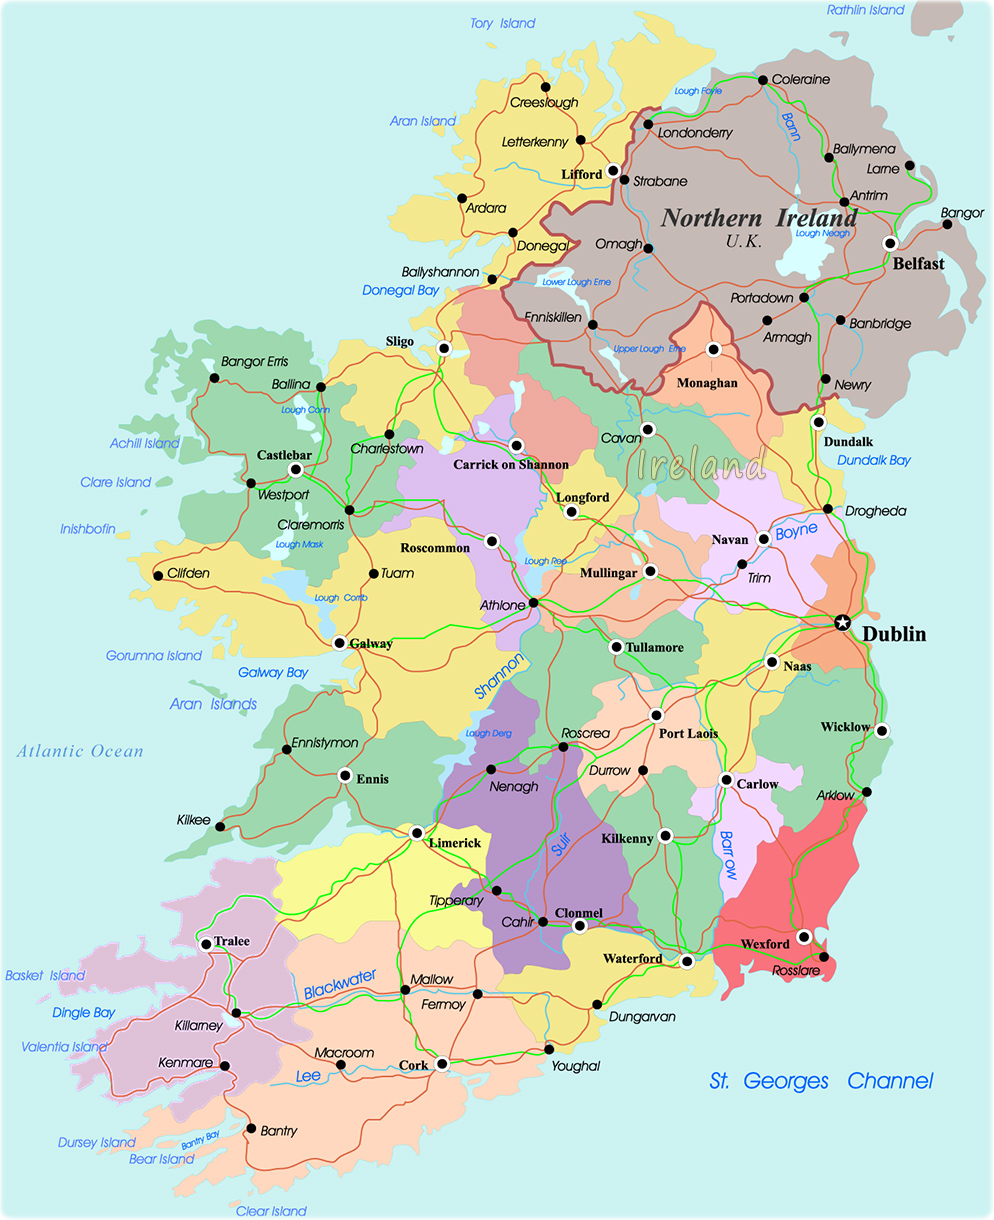 Map Of Ireland Showing Athlone.Map Ireland